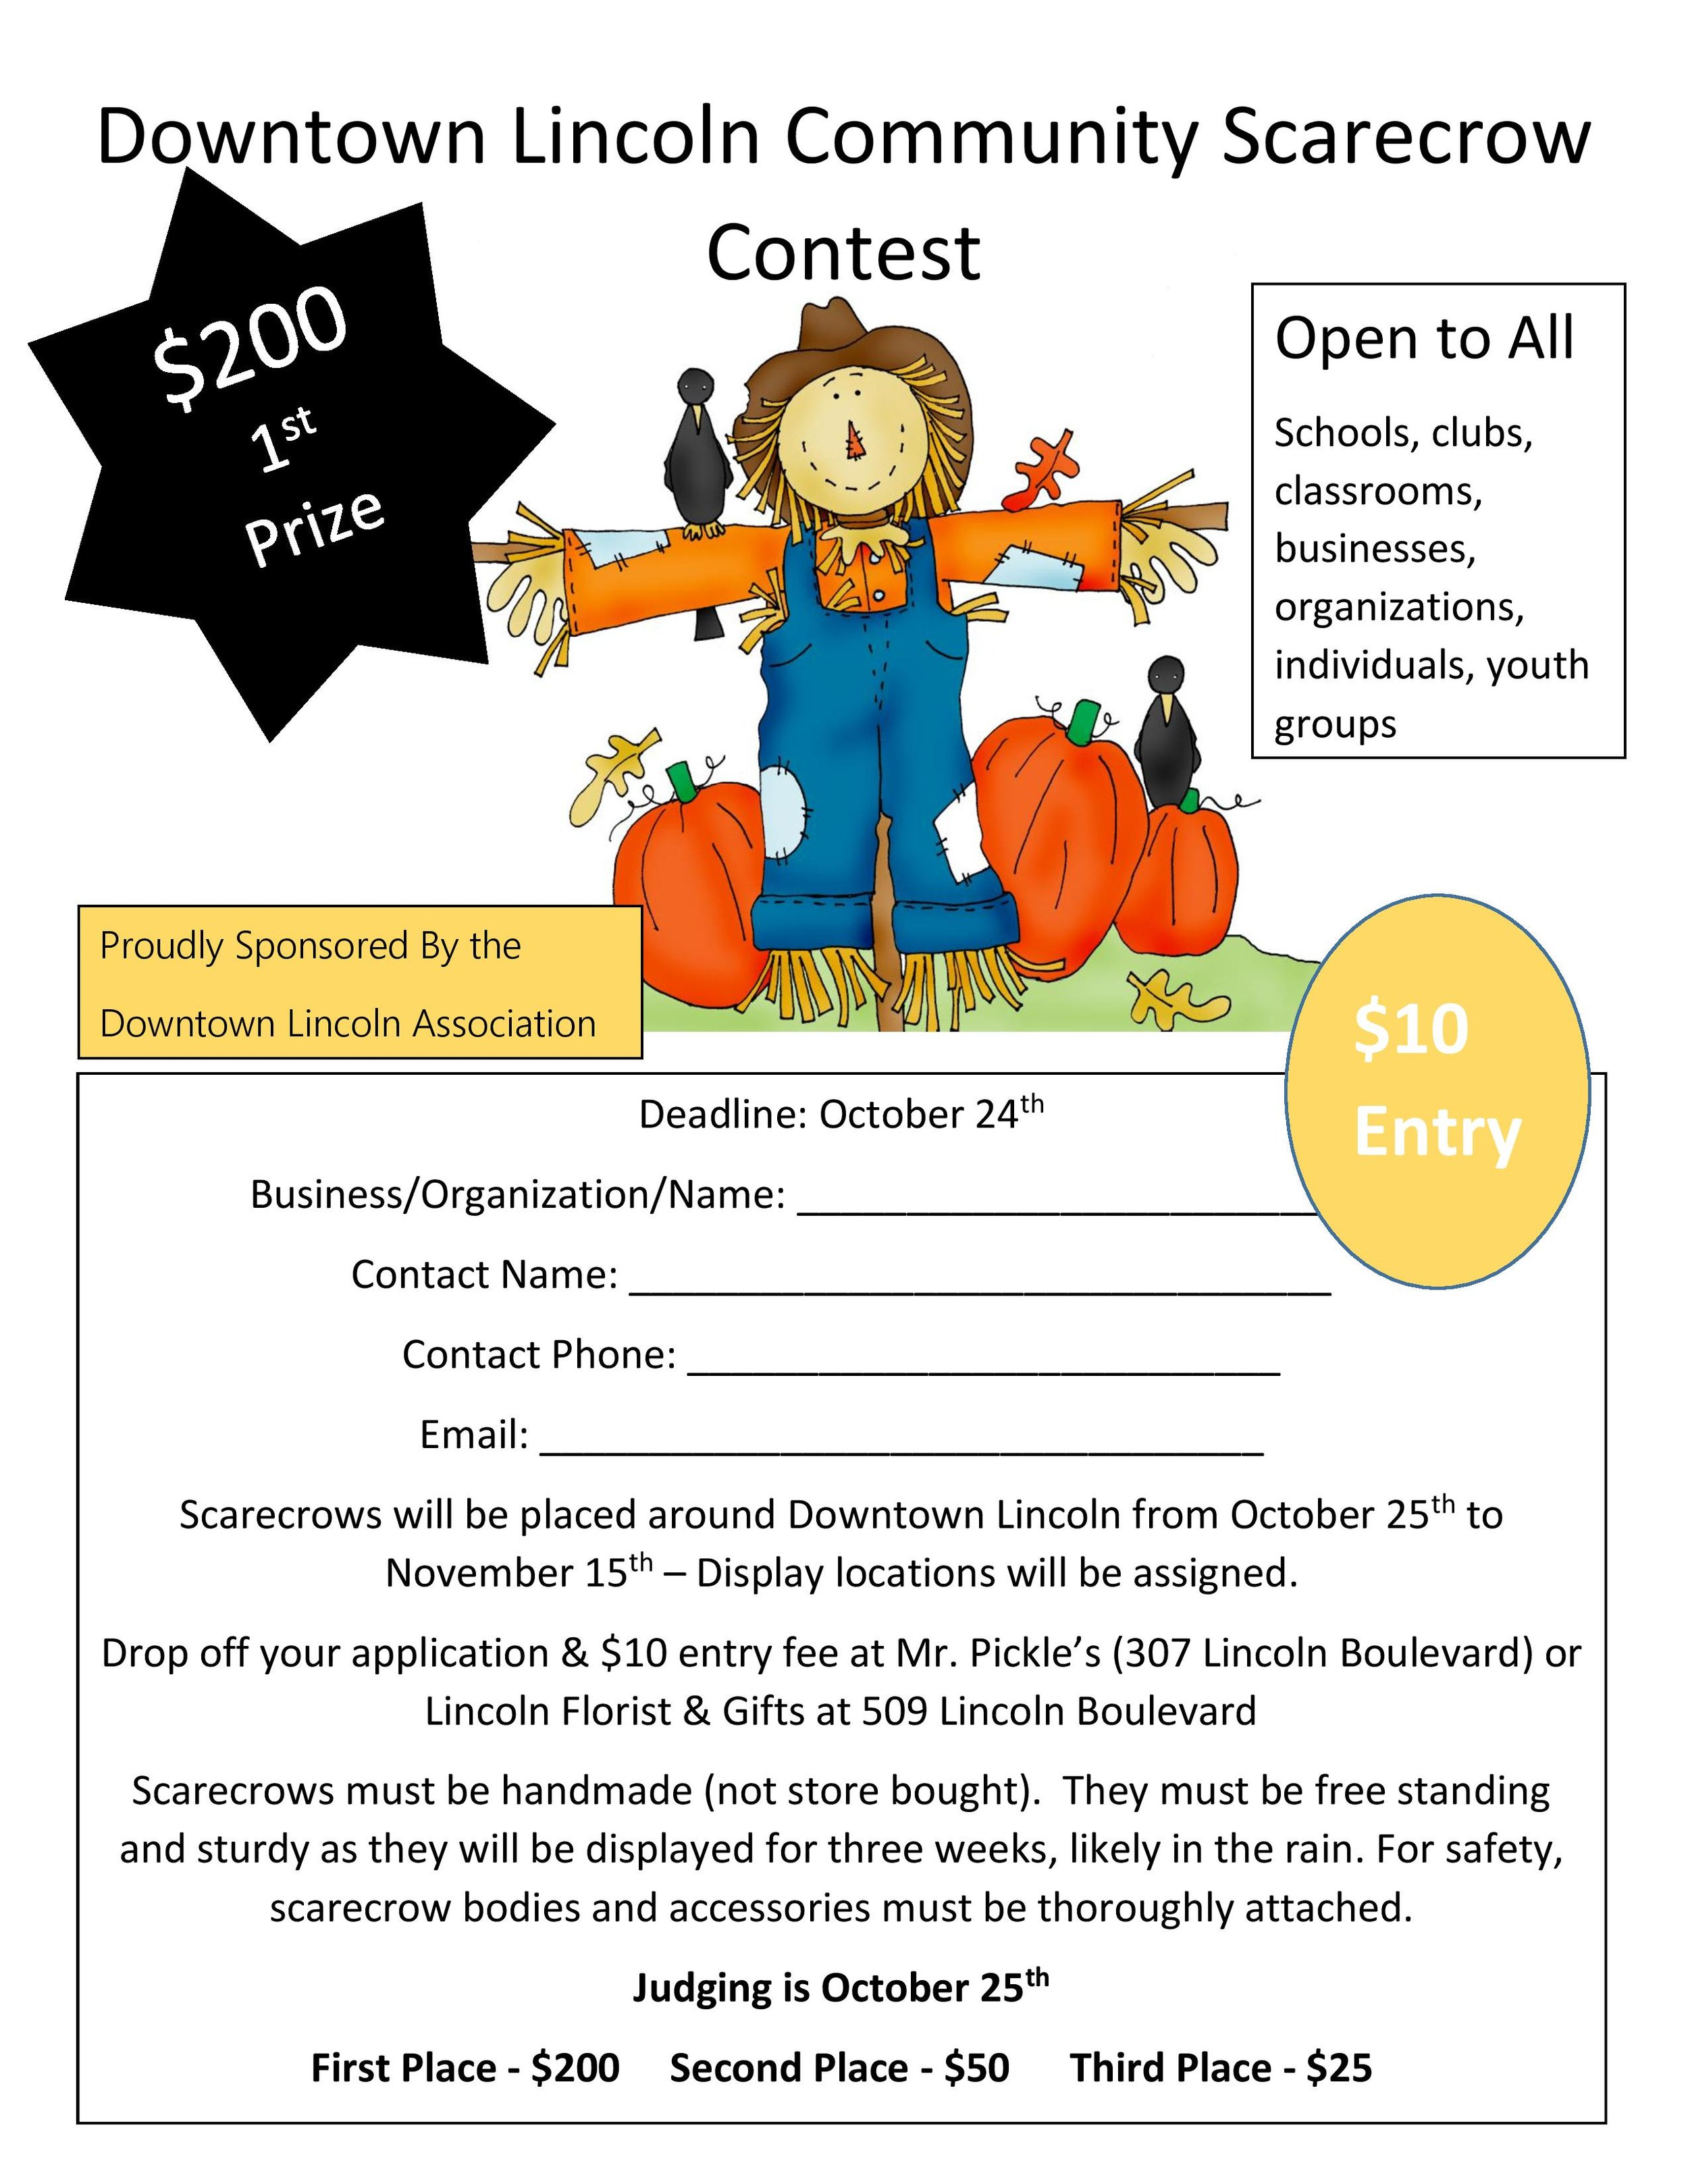 Downtown Lincoln Community Scarecrow Contest 2017-JPEG.jpg